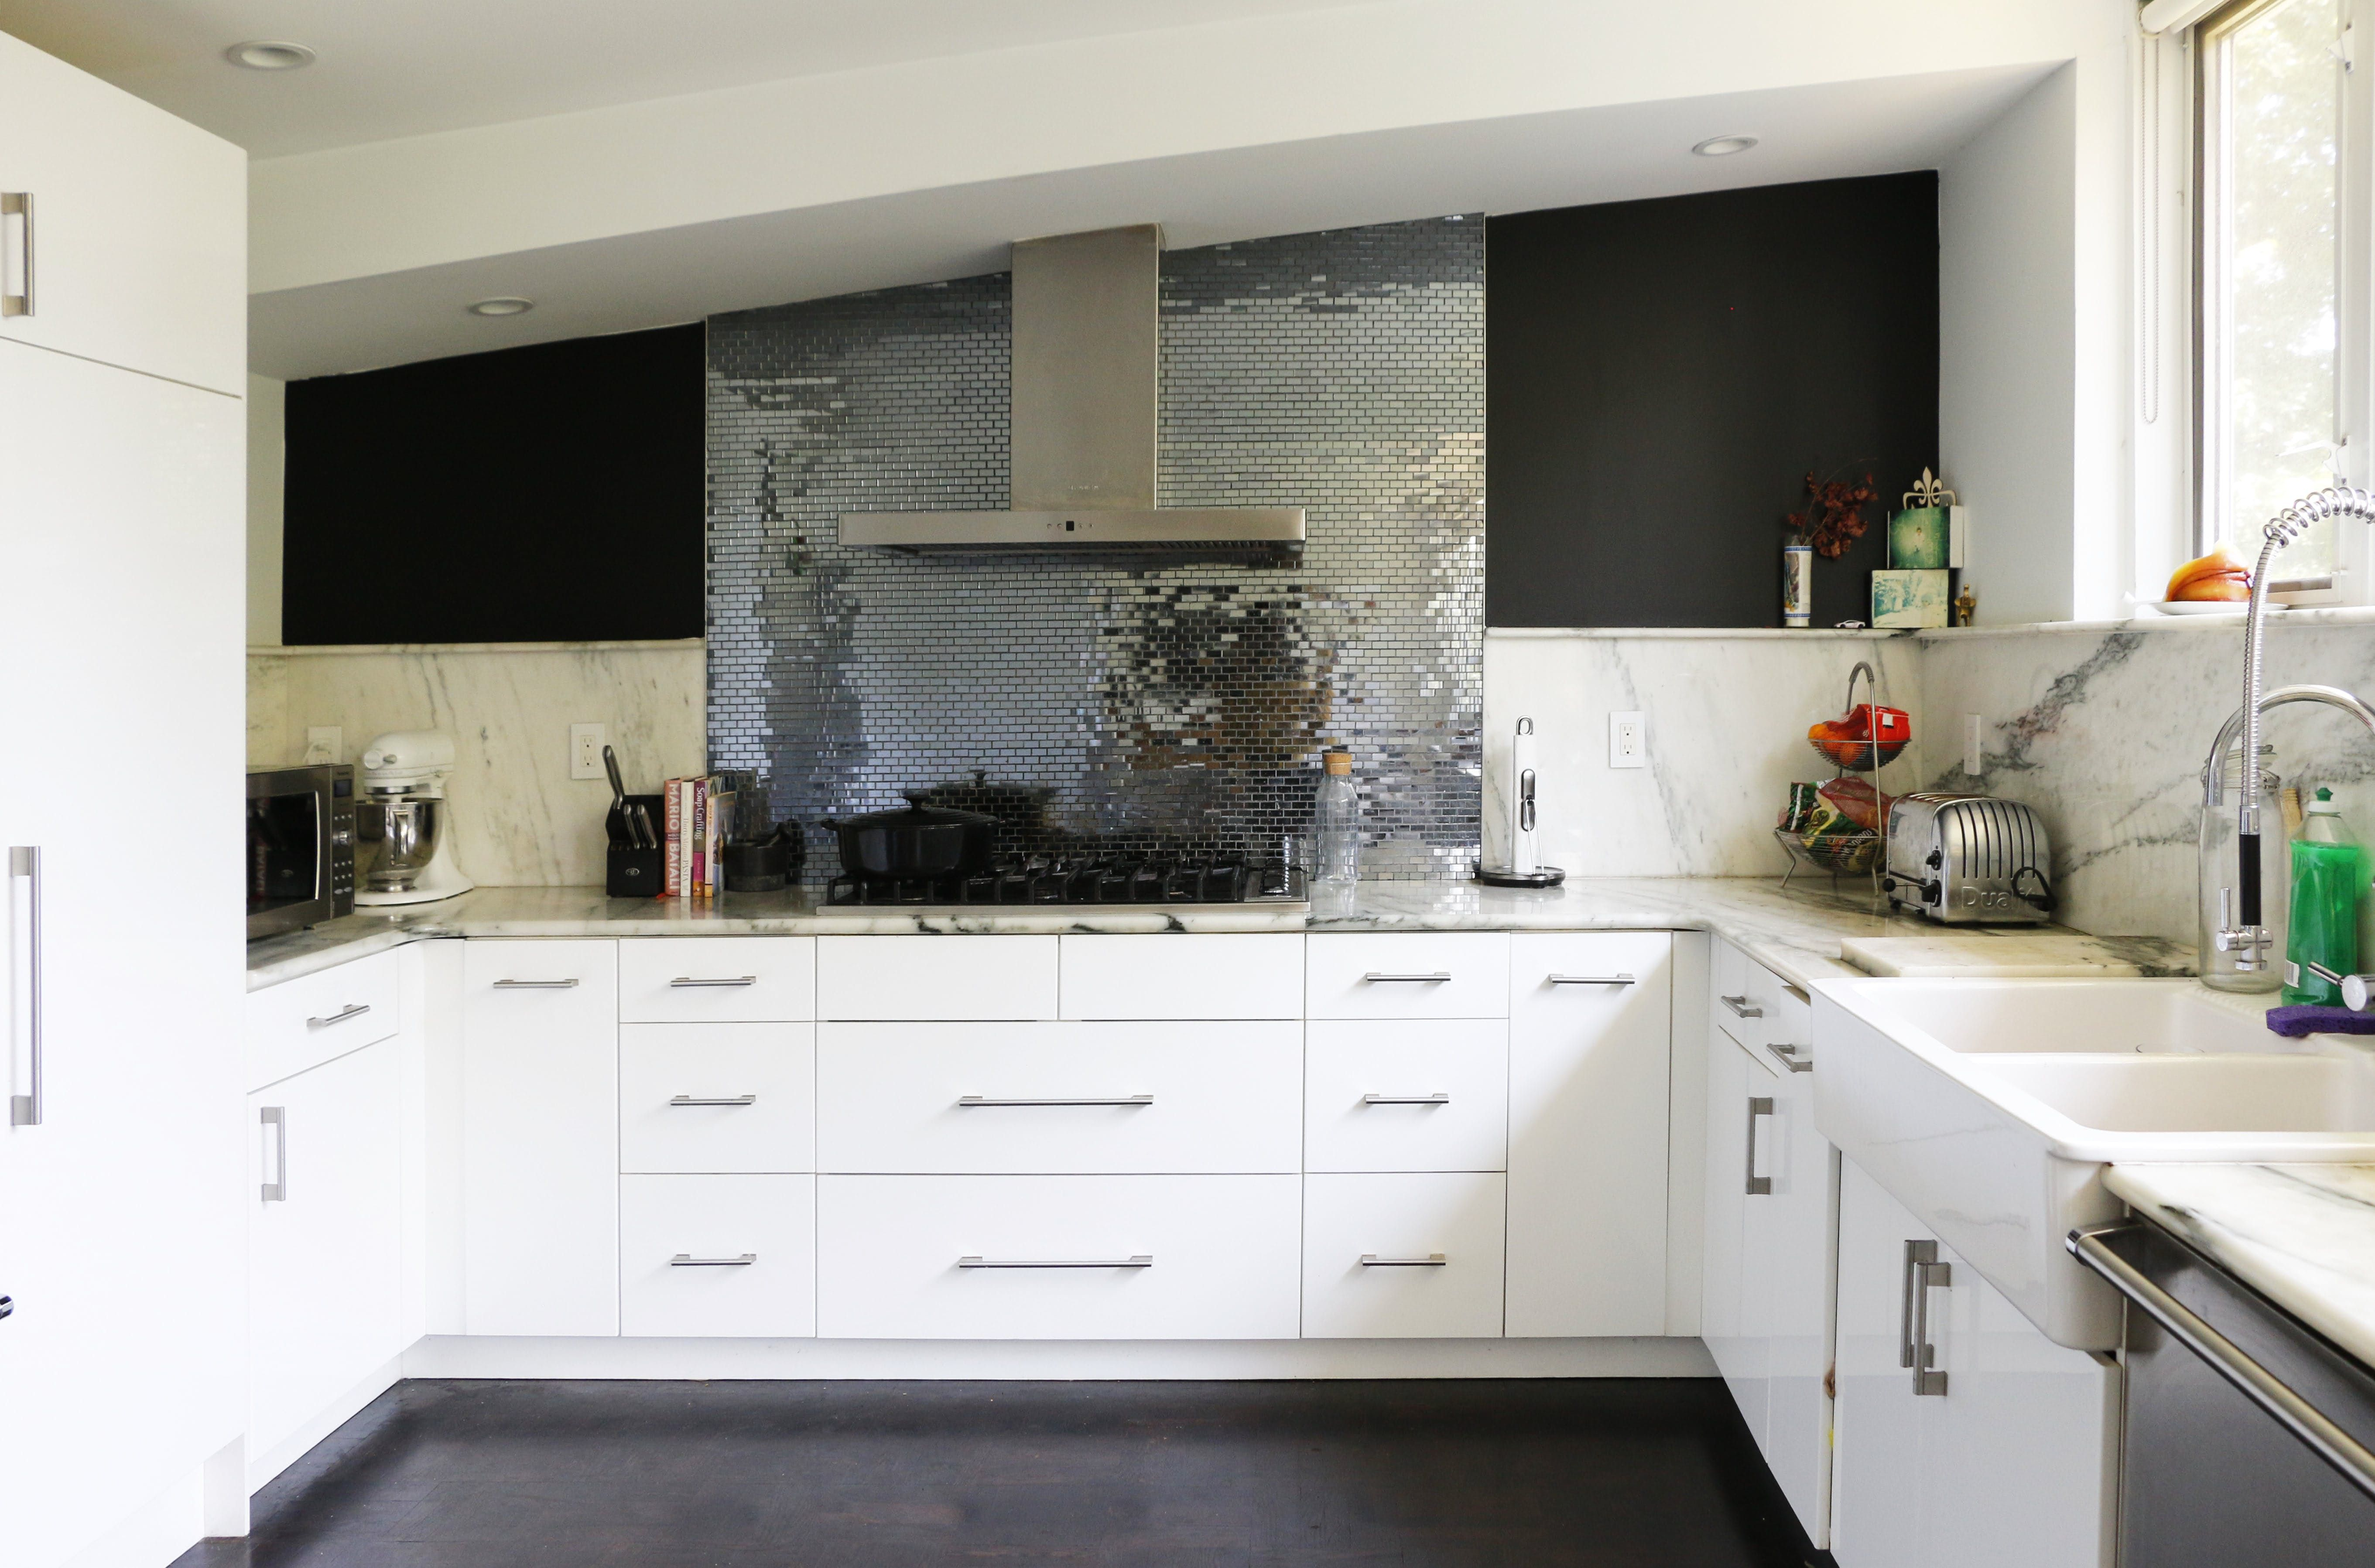 House Tour: Neffi's Contemporary Minimalism with a Twist   The o ...